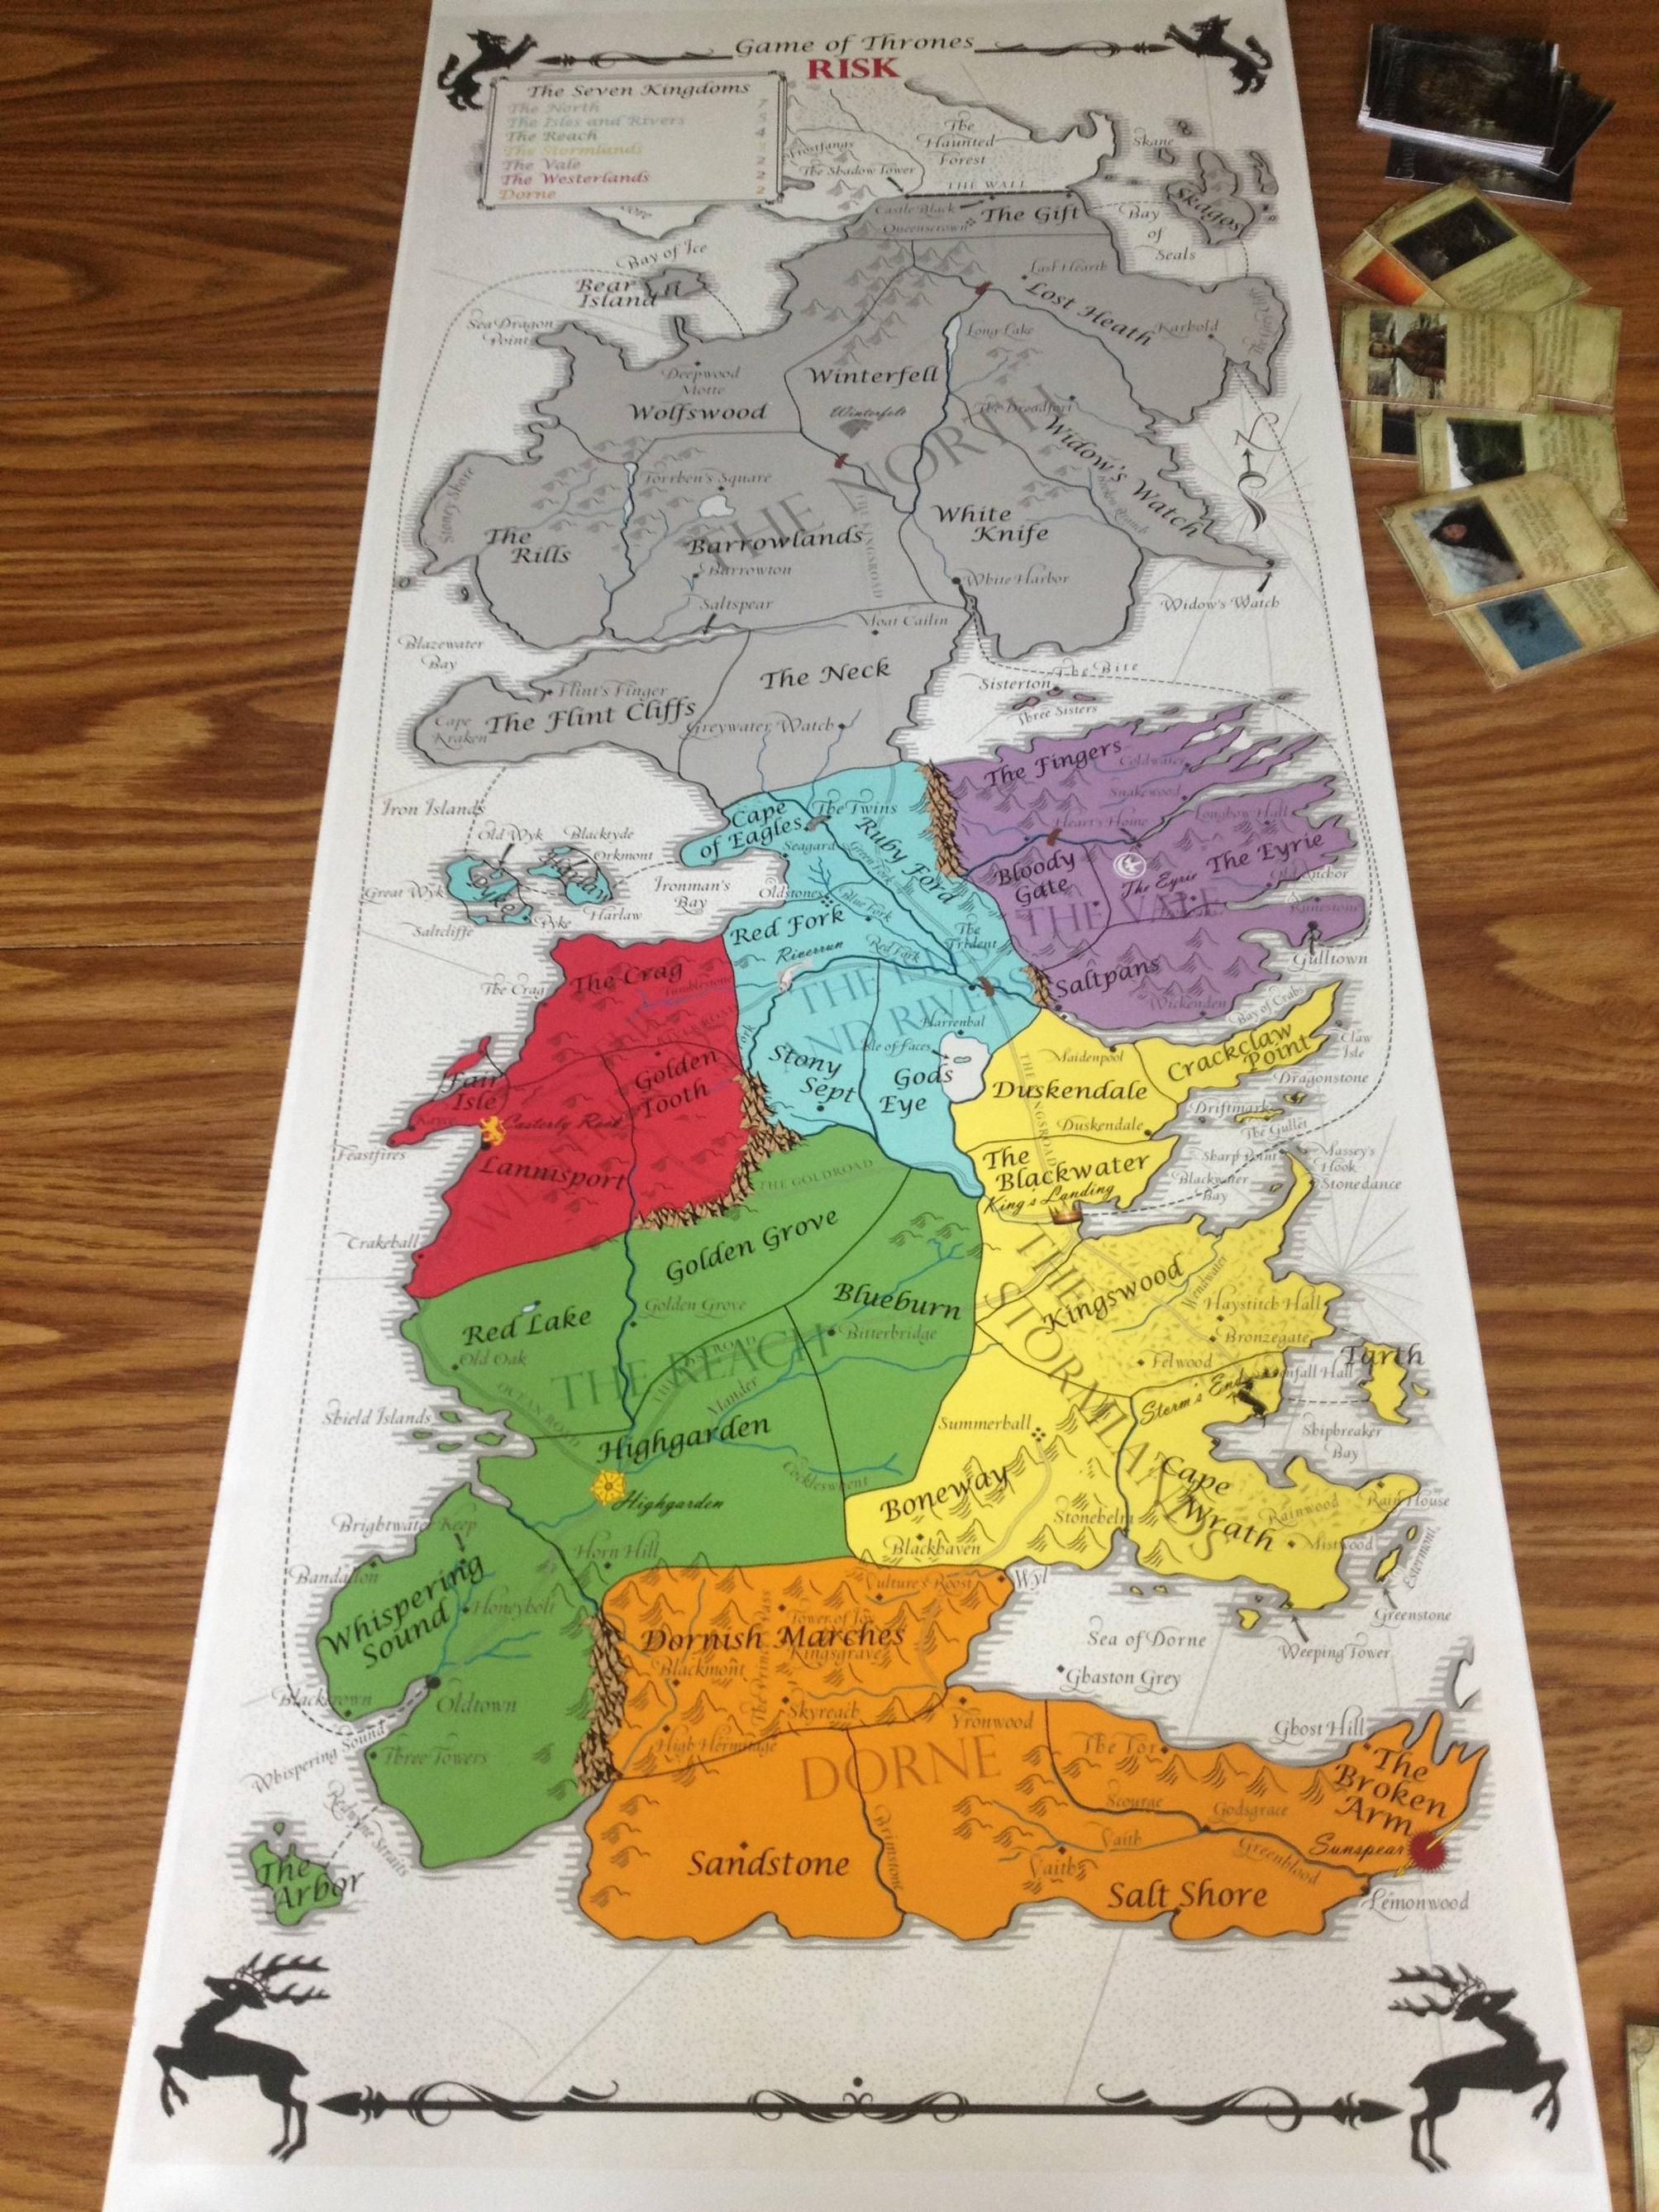 Game of Thrones Risk Game! There are no ifs, ands or buts.... I need this game!